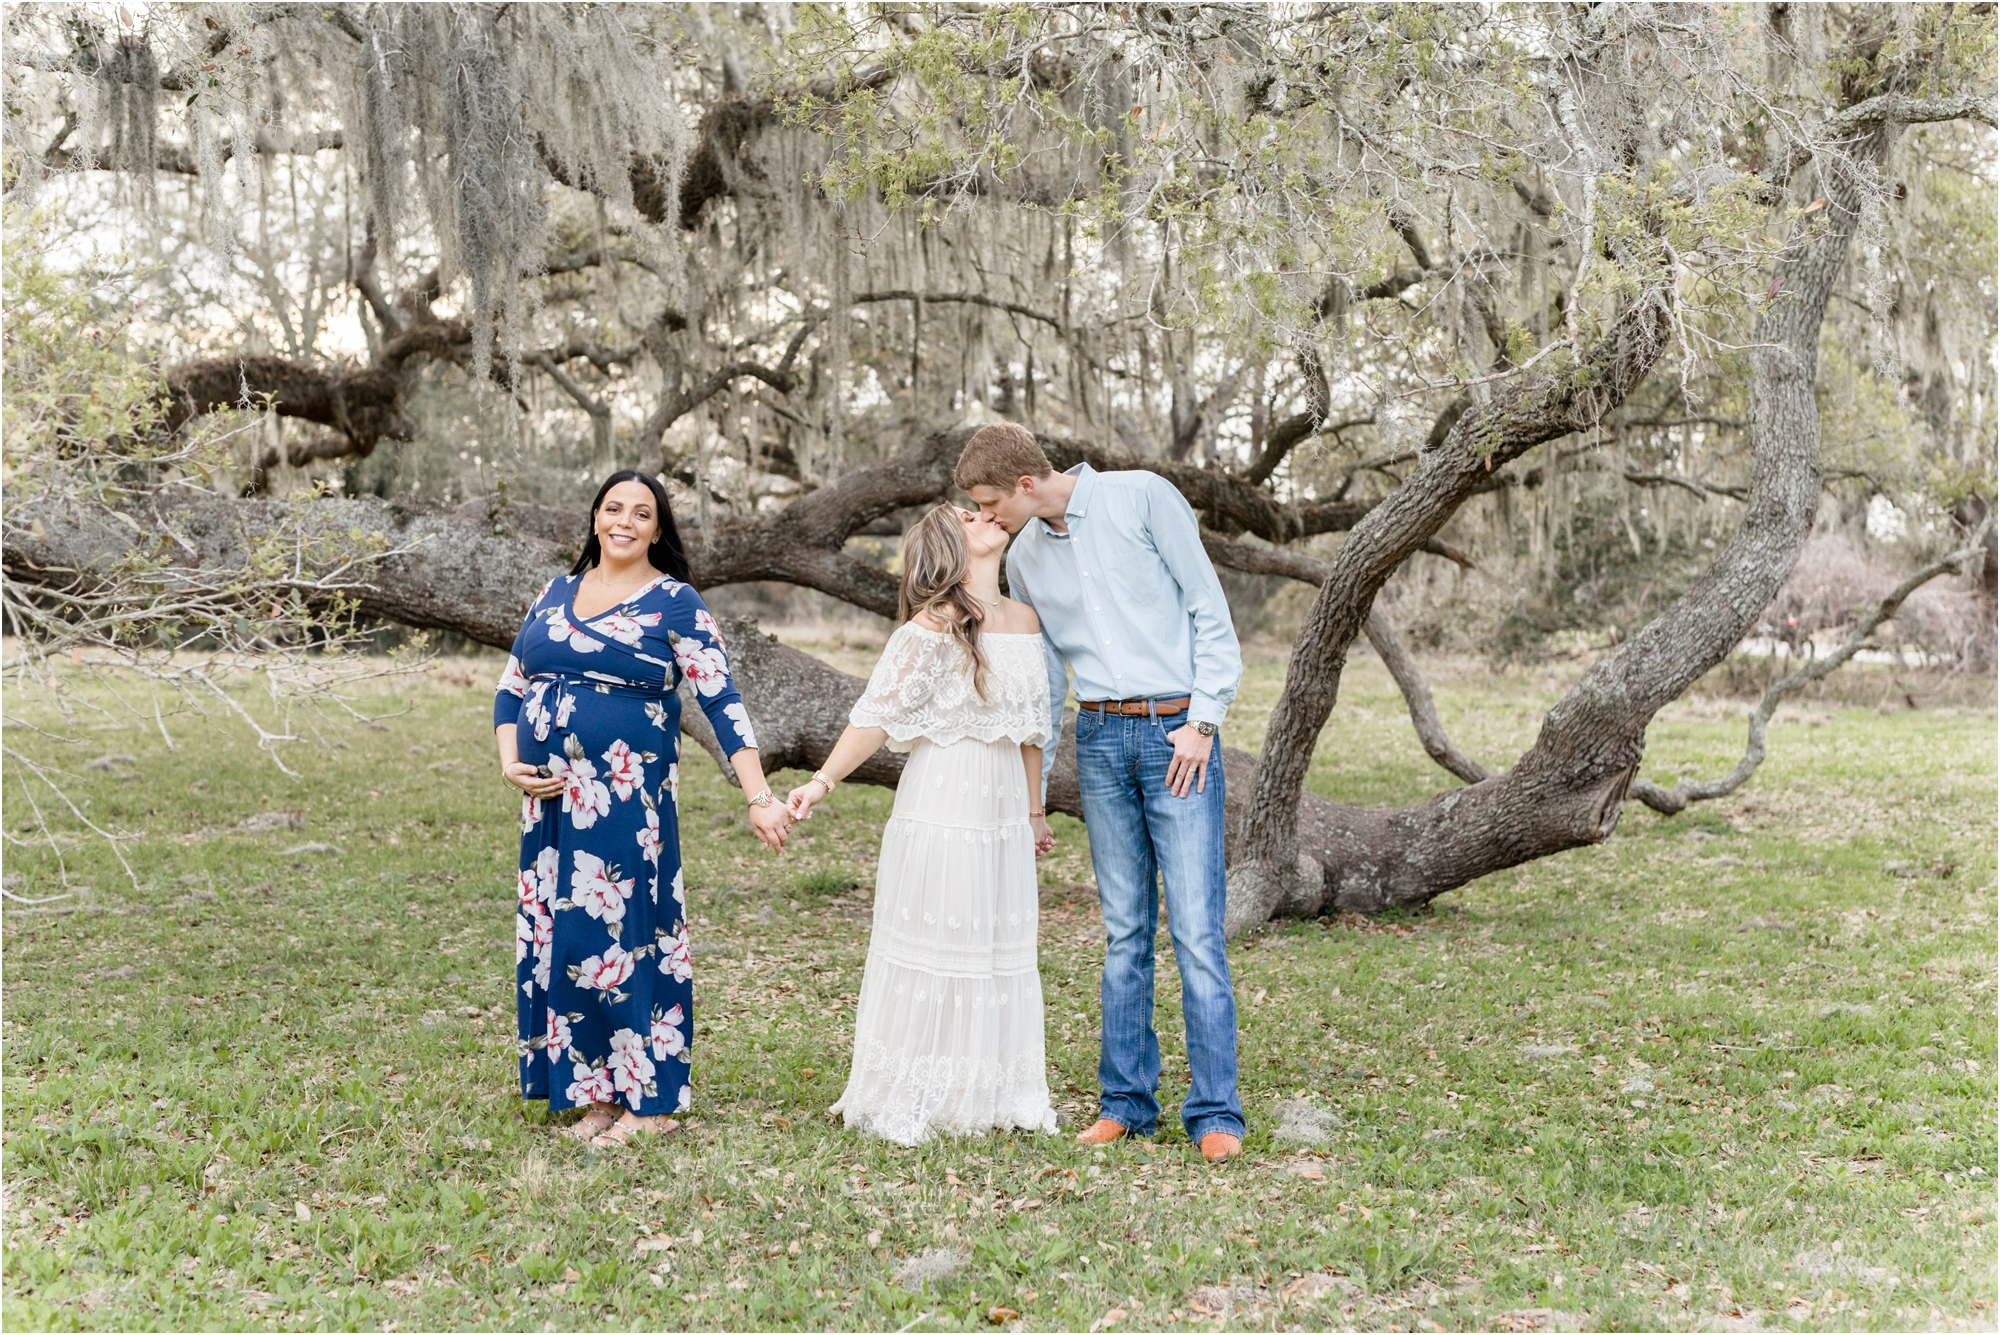 Surrogate maternity session with surrogate Mother and parents under weeping tree in Houston, TX area. Photo by Kelly of Lifetime of Clicks Photography.